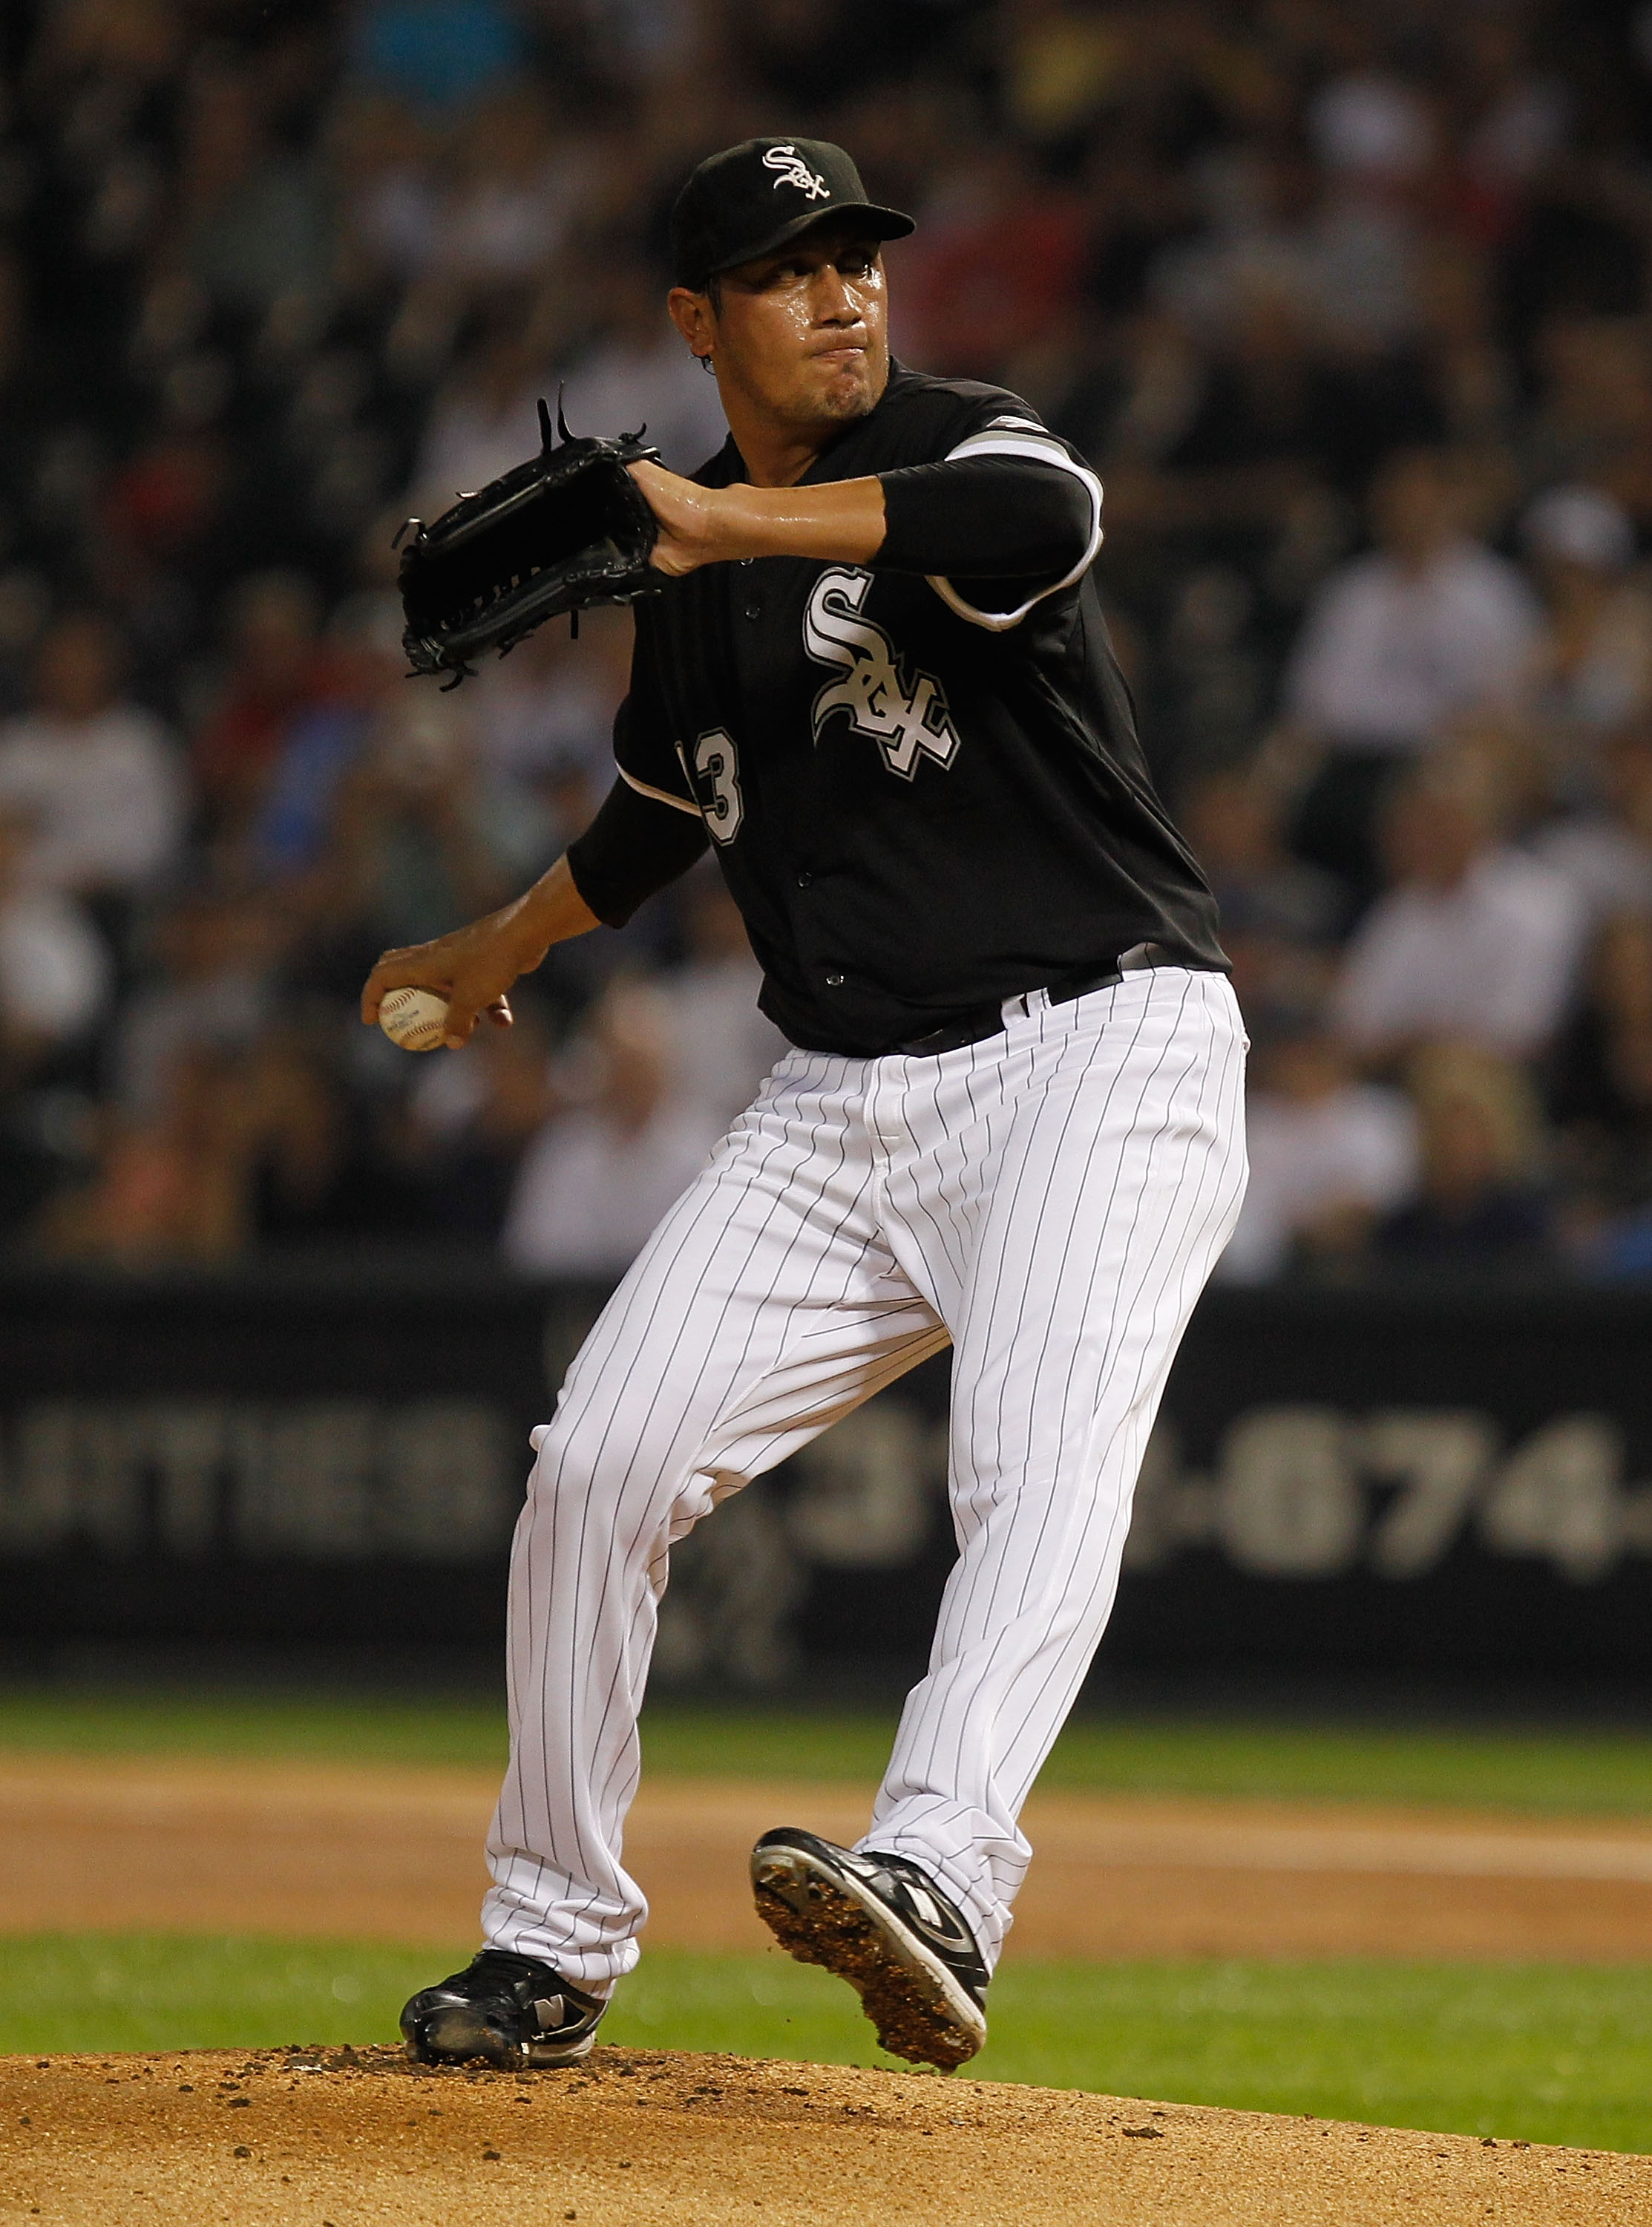 With so many rotation questions, the Yanks may have to rely on former White Sox Garcia.